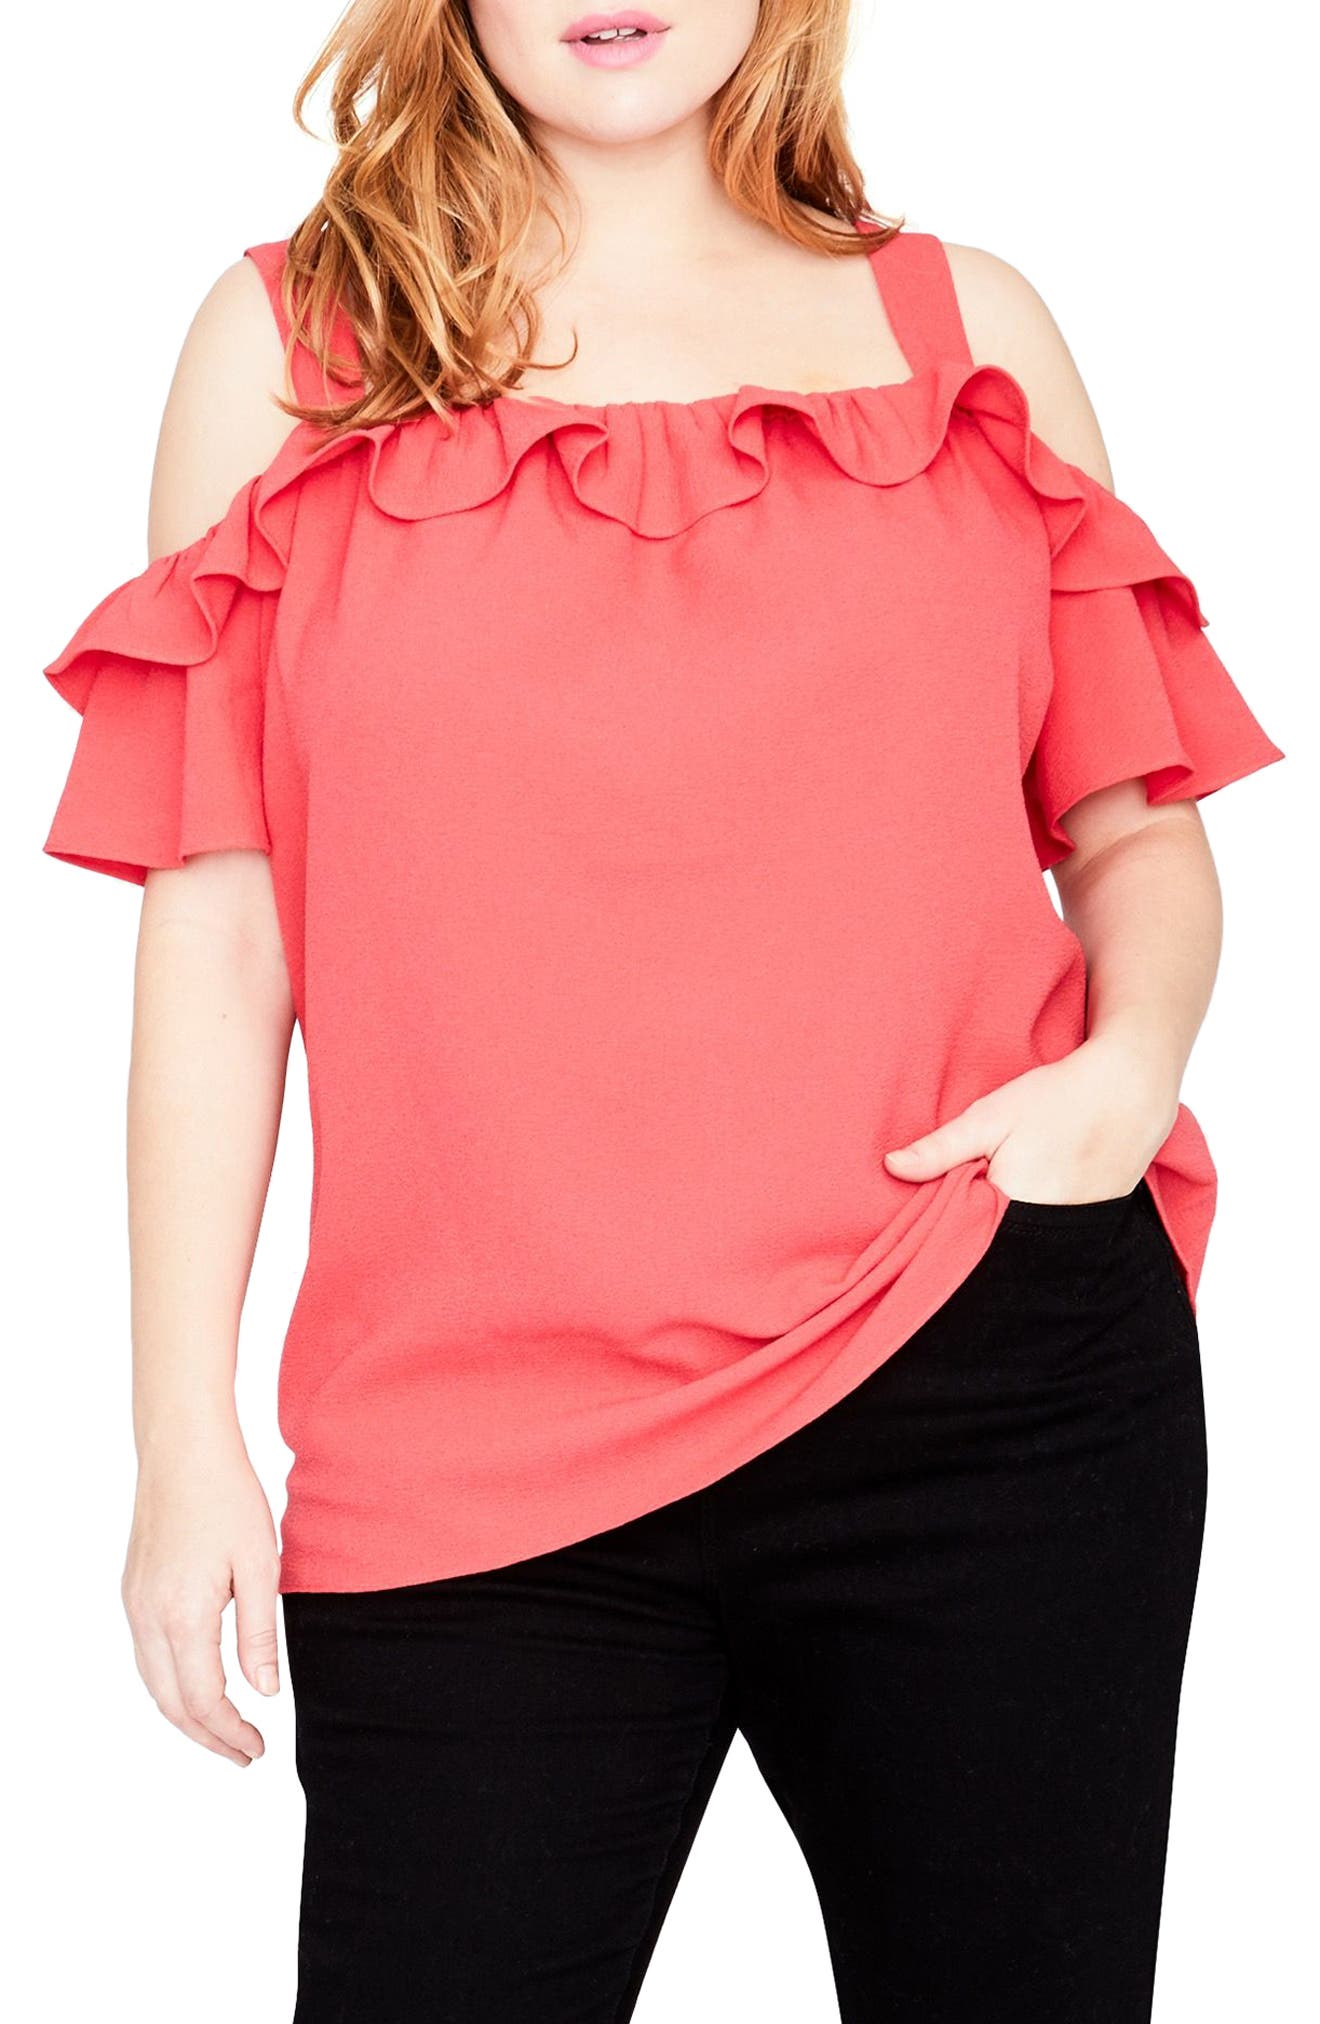 Main Image - RACHEL Rachel Roy Ruffle Edge Top (Plus Size)